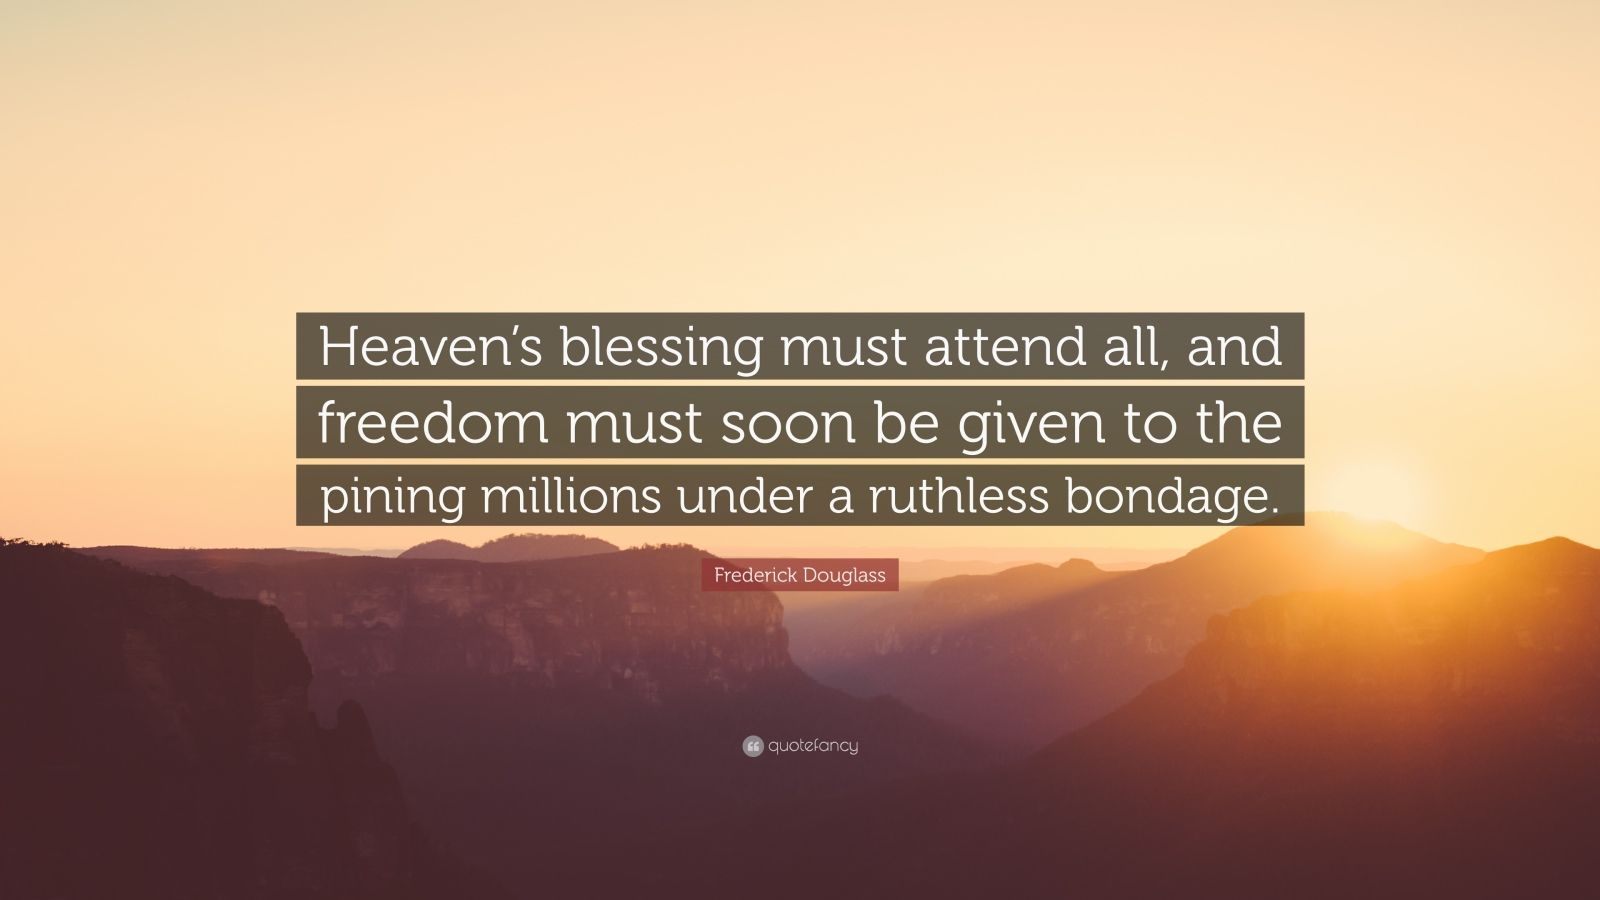 """Frederick Douglass Quote: """"Heaven's blessing must attend all, and freedom must soon be given to the pining millions under a ruthless bondage."""""""